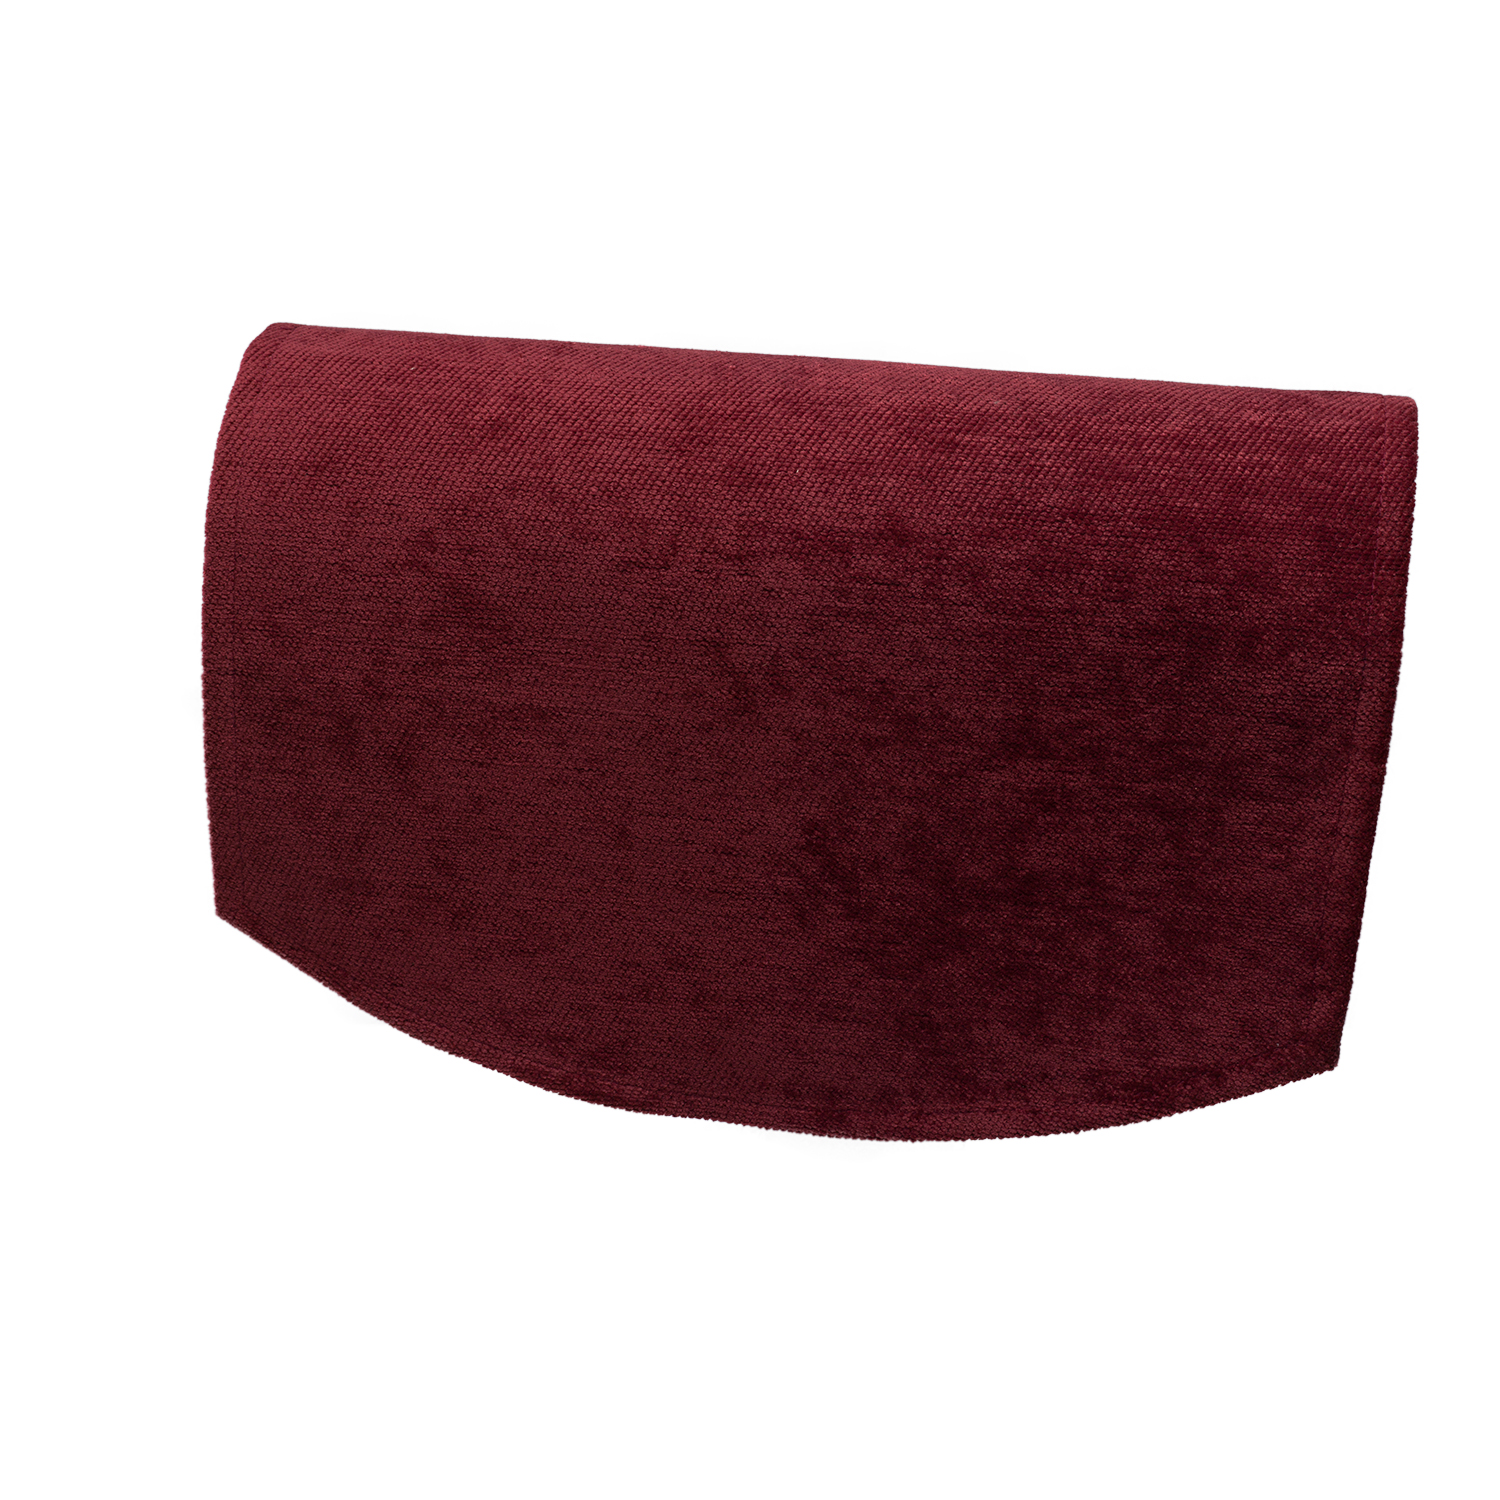 single couch chair cover room essentials folding chenille back plain soft touch furniture